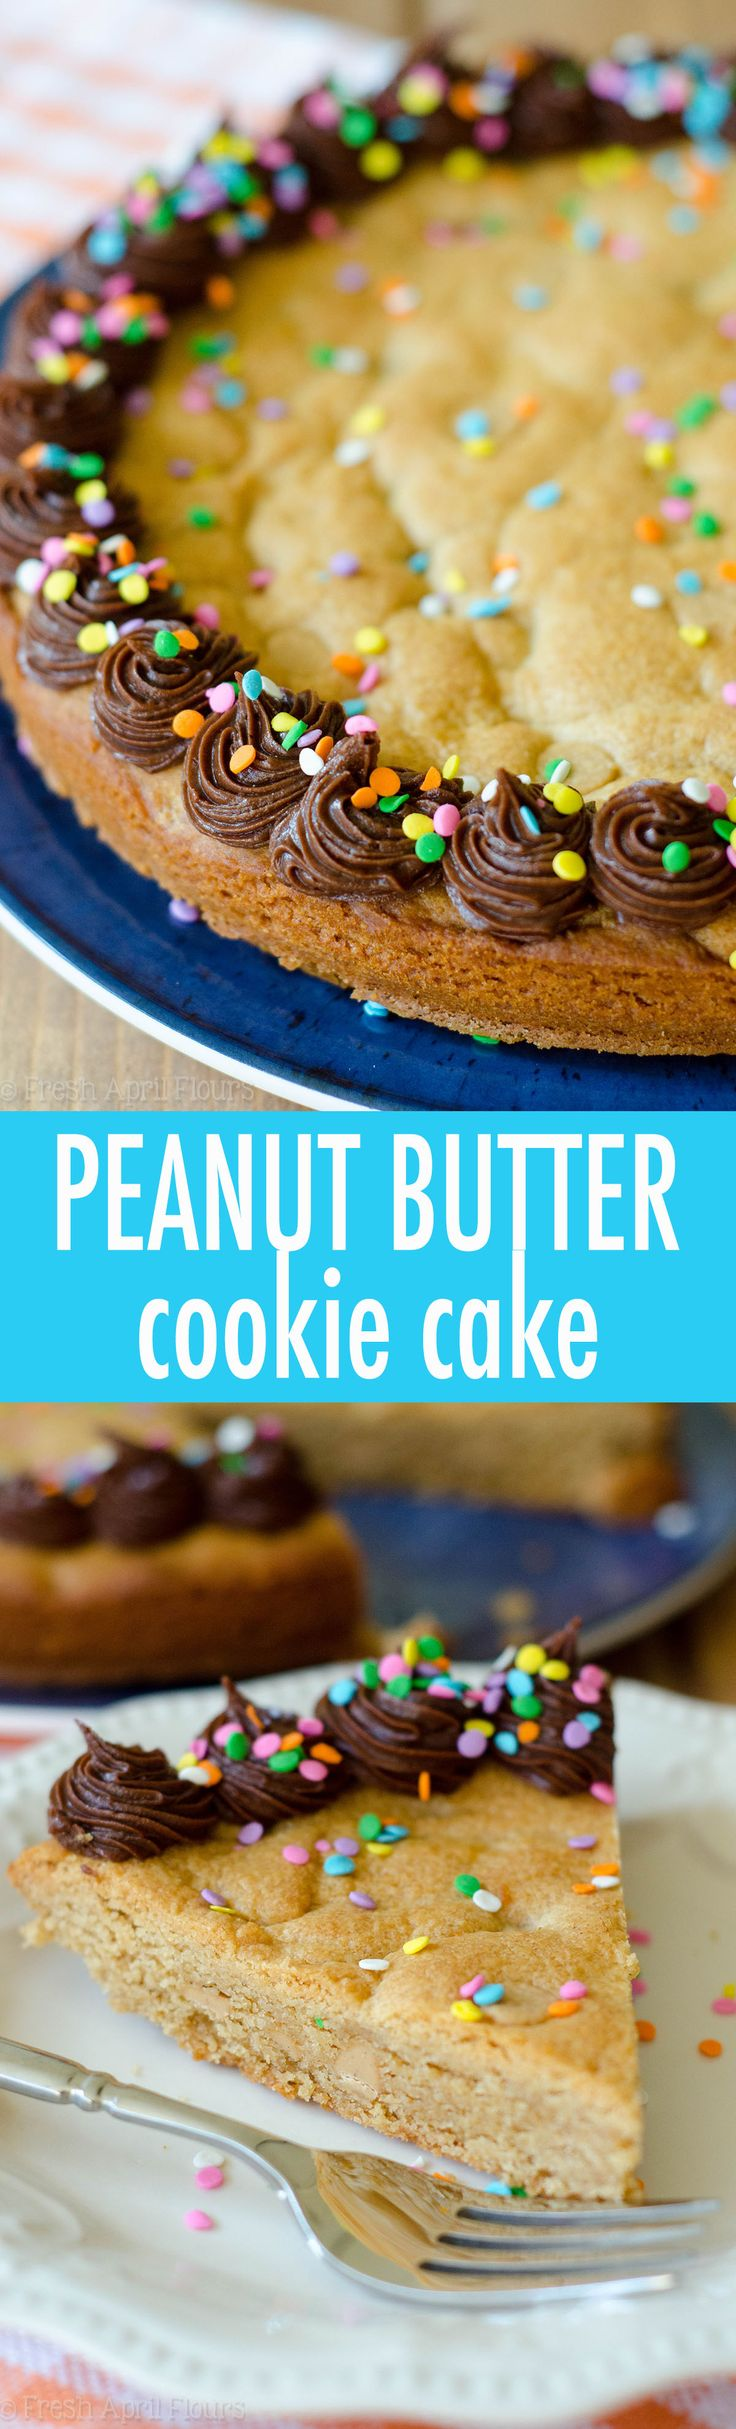 Peanut Butter Cookie Cake: A peanut buttery twist on the classic cookie cake. Top with chocolate, peanut butter, or vanilla frosting and get to decorating! via @frshaprilflours